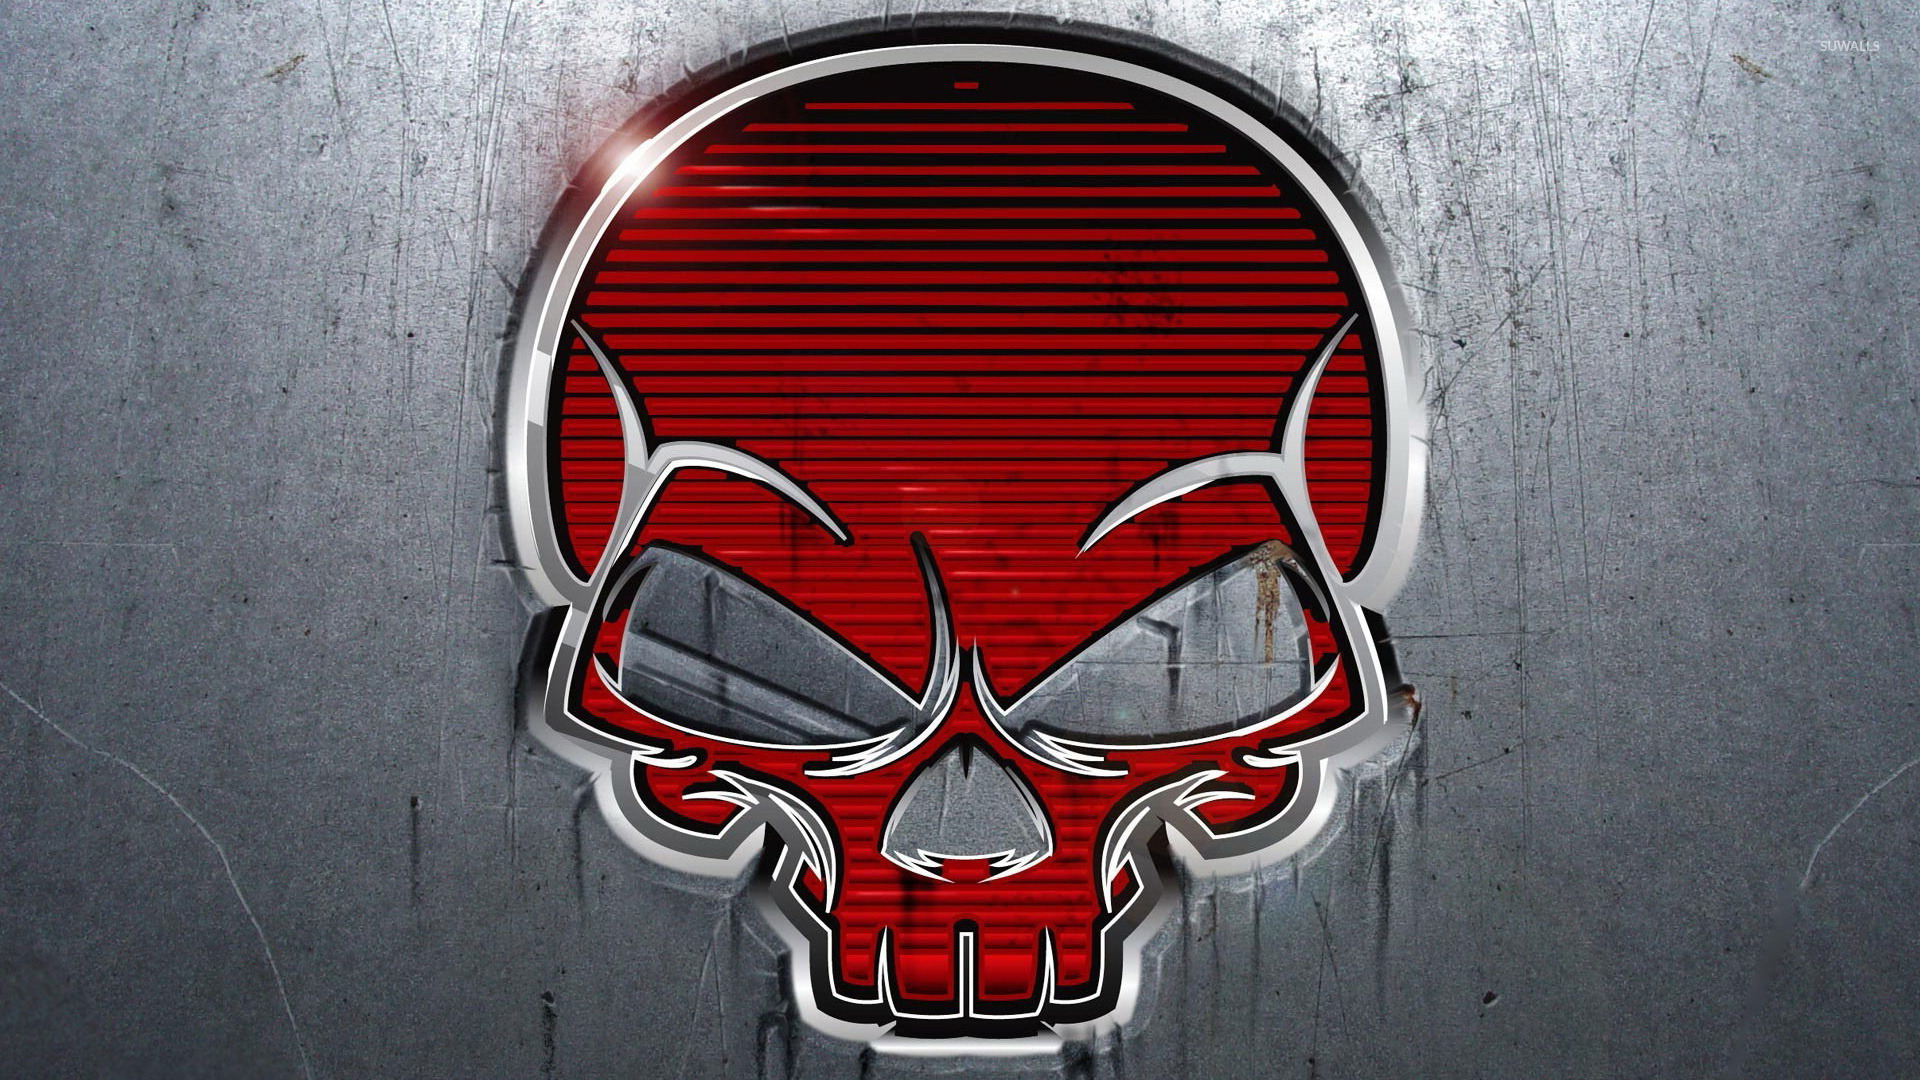 Red Skull Wallpaper - WallpaperSafari